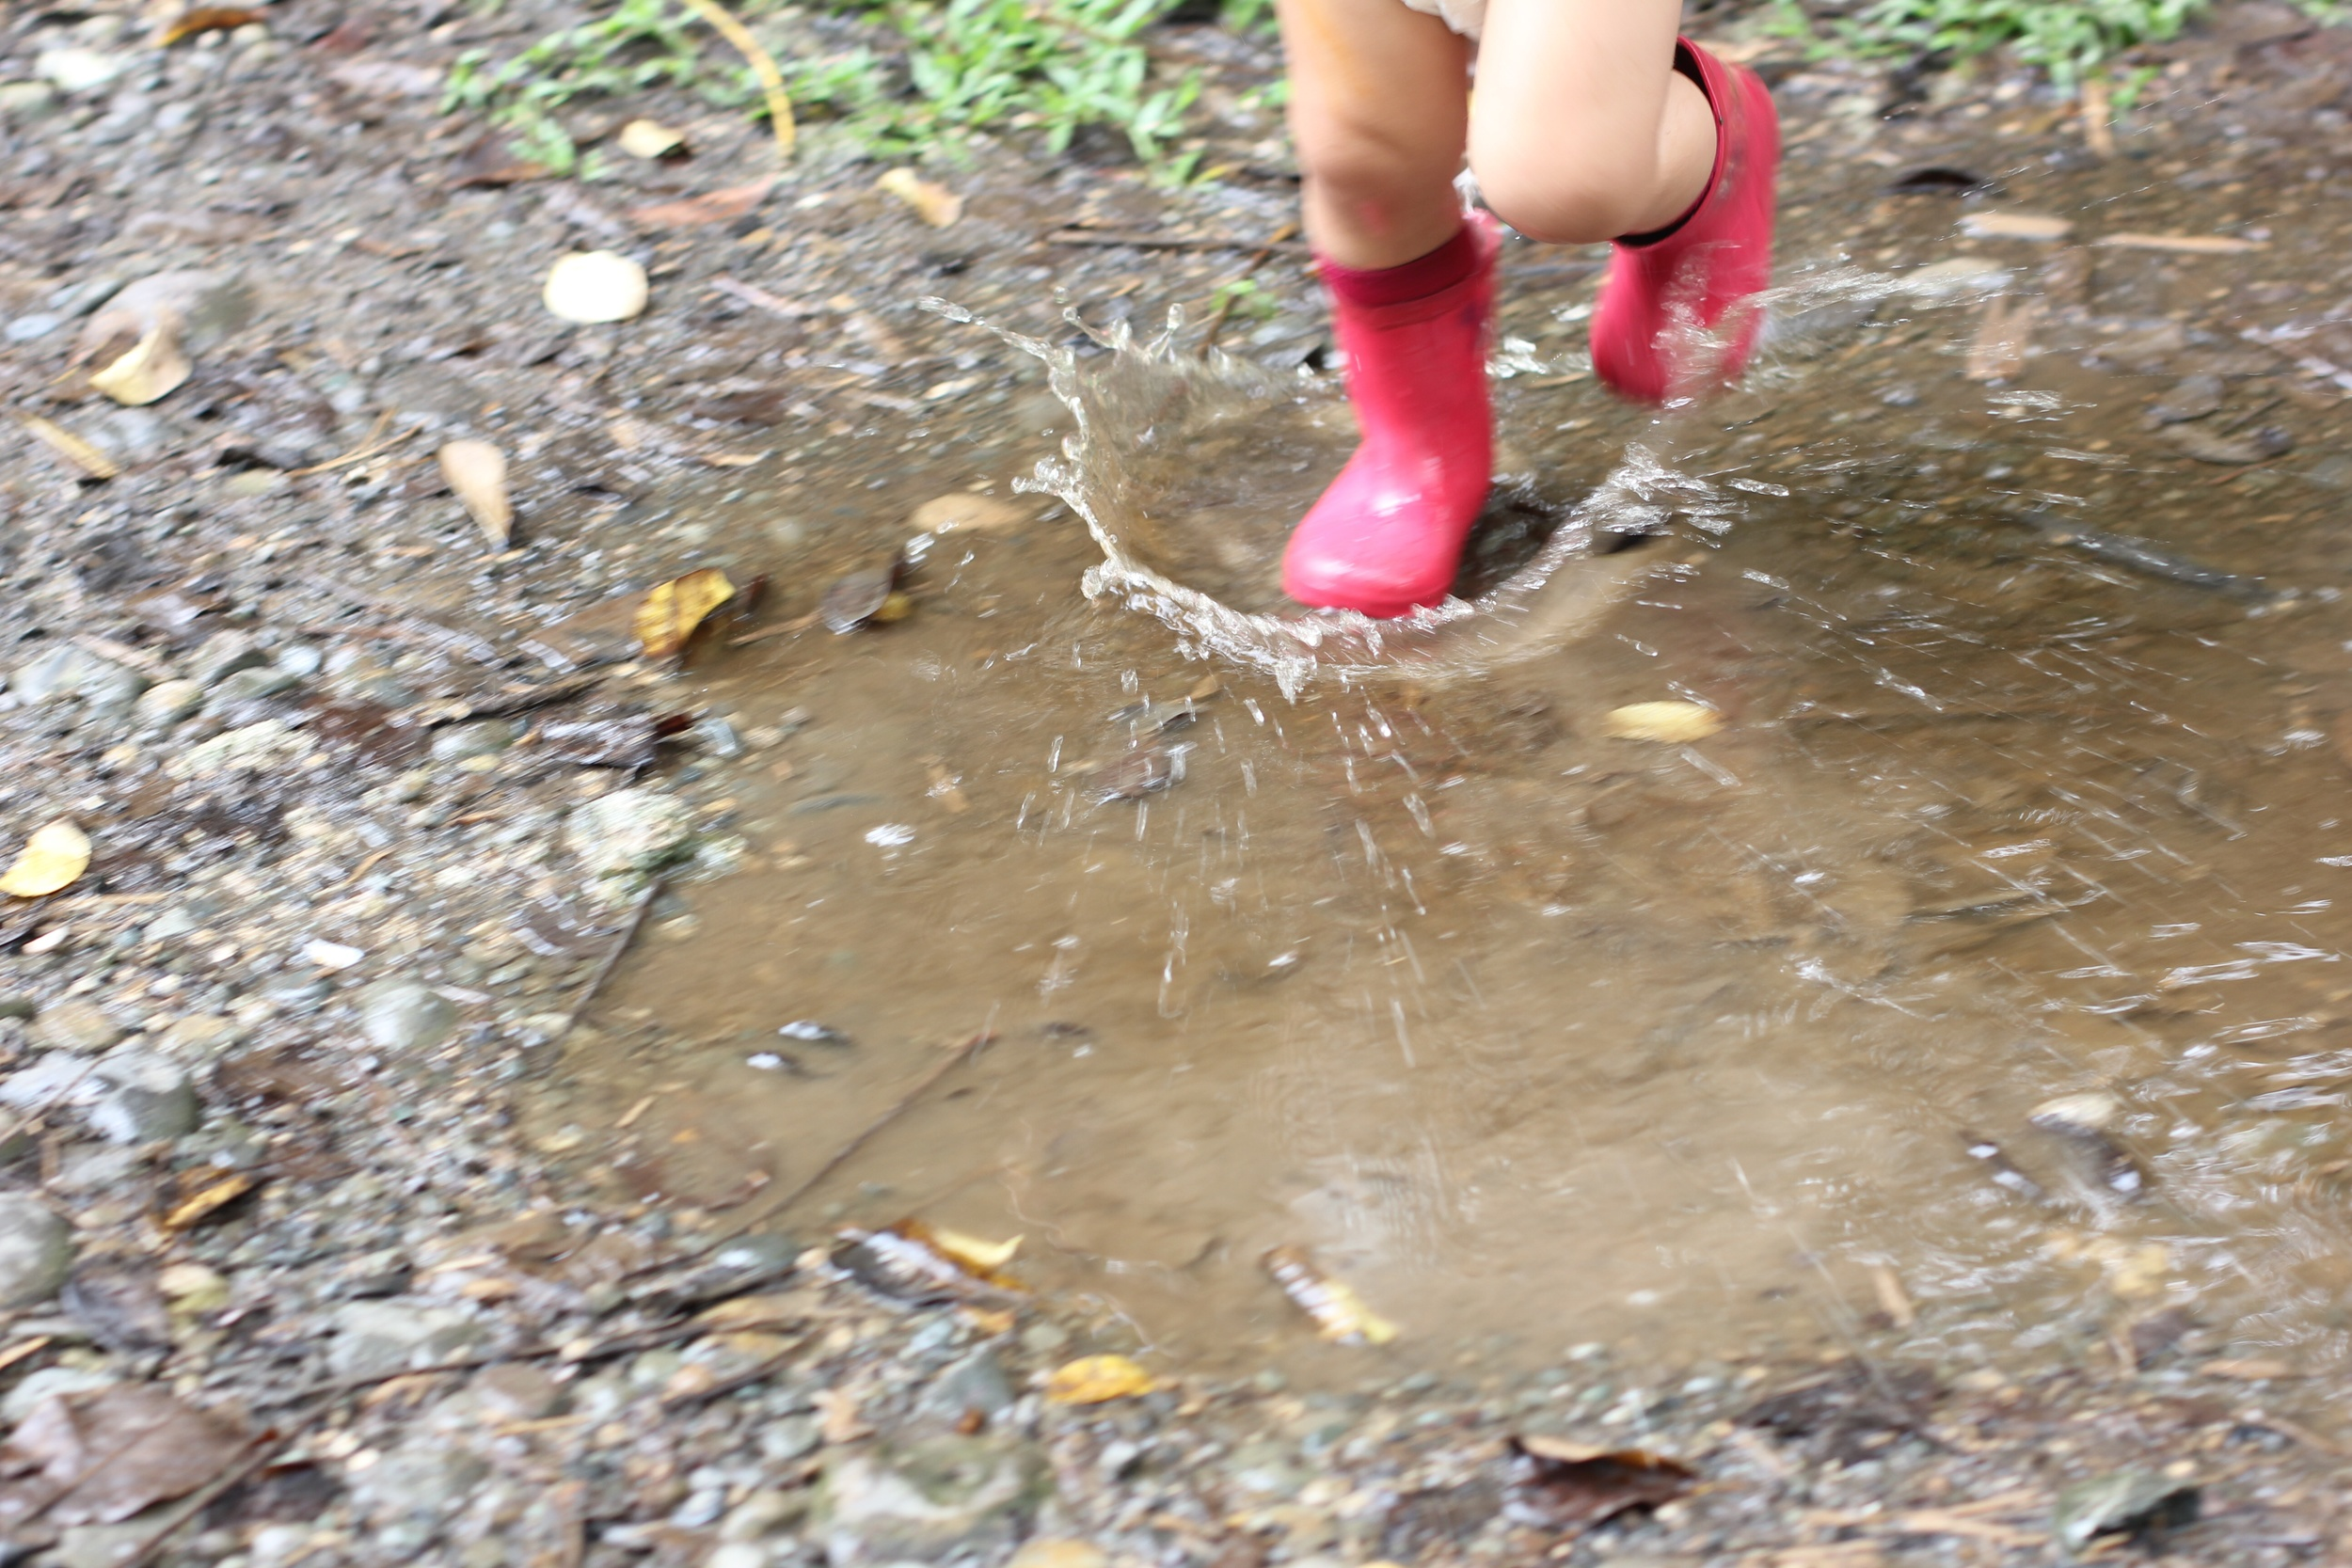 puddle conquered (c) dhana loner